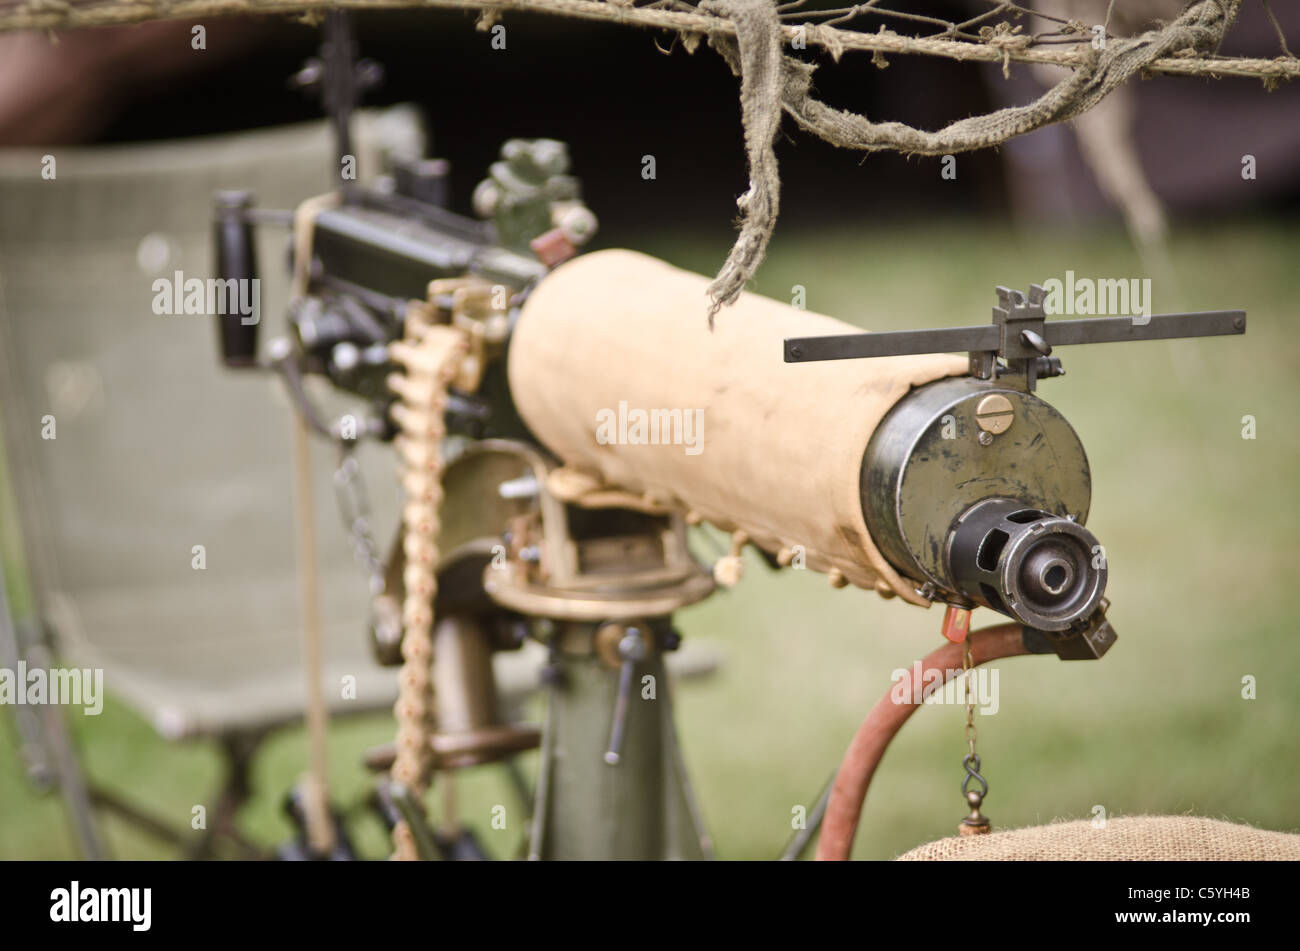 Vickers water cooled machine gun - Stock Image